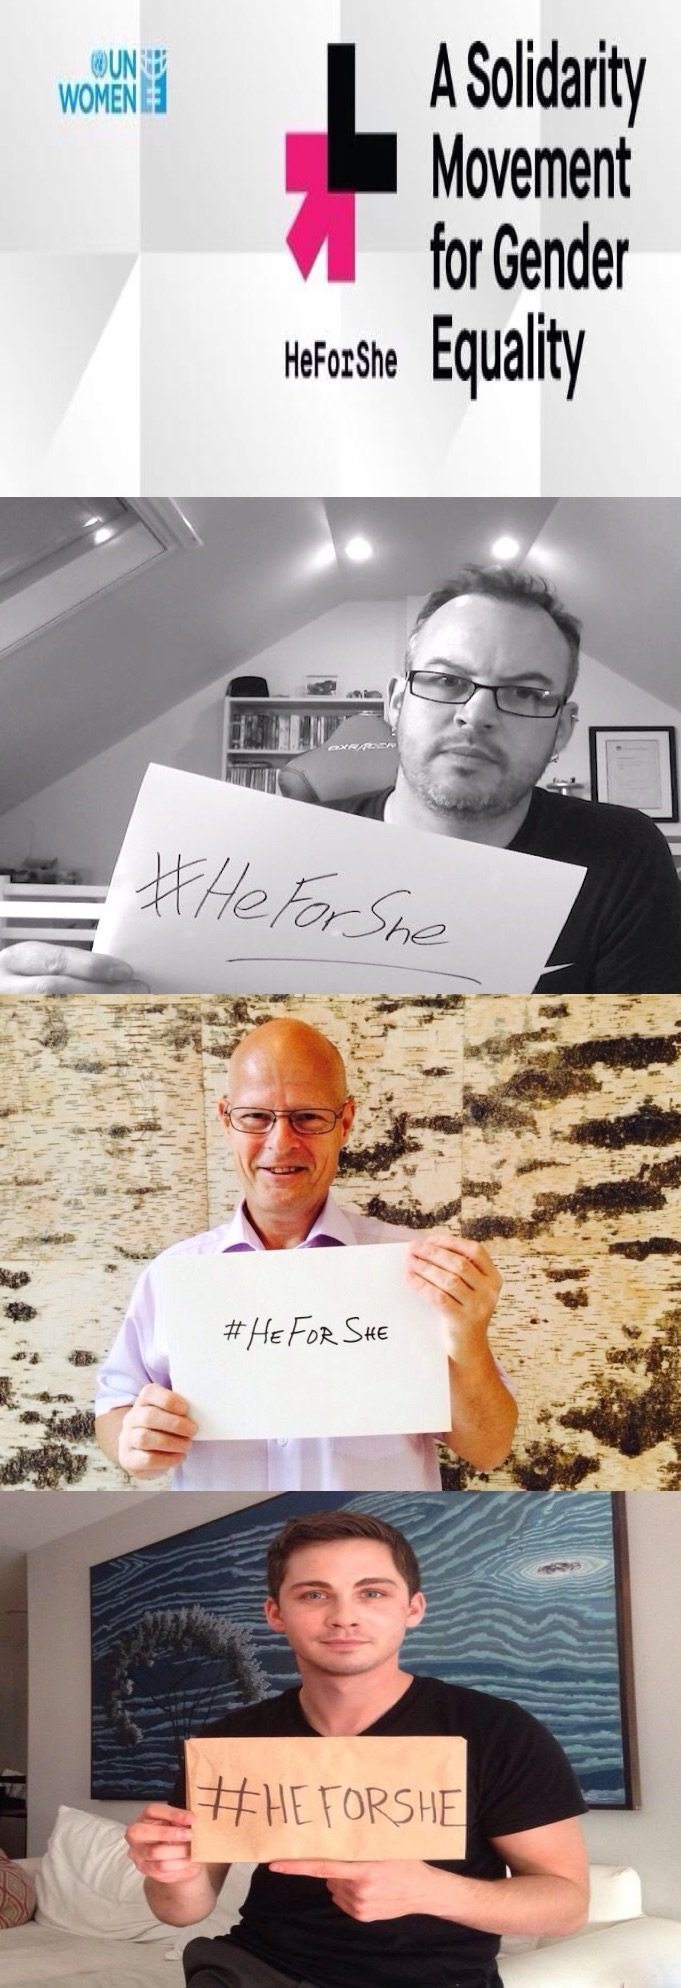 The Most Viral Set of Photos on #Twitter #HeforShe